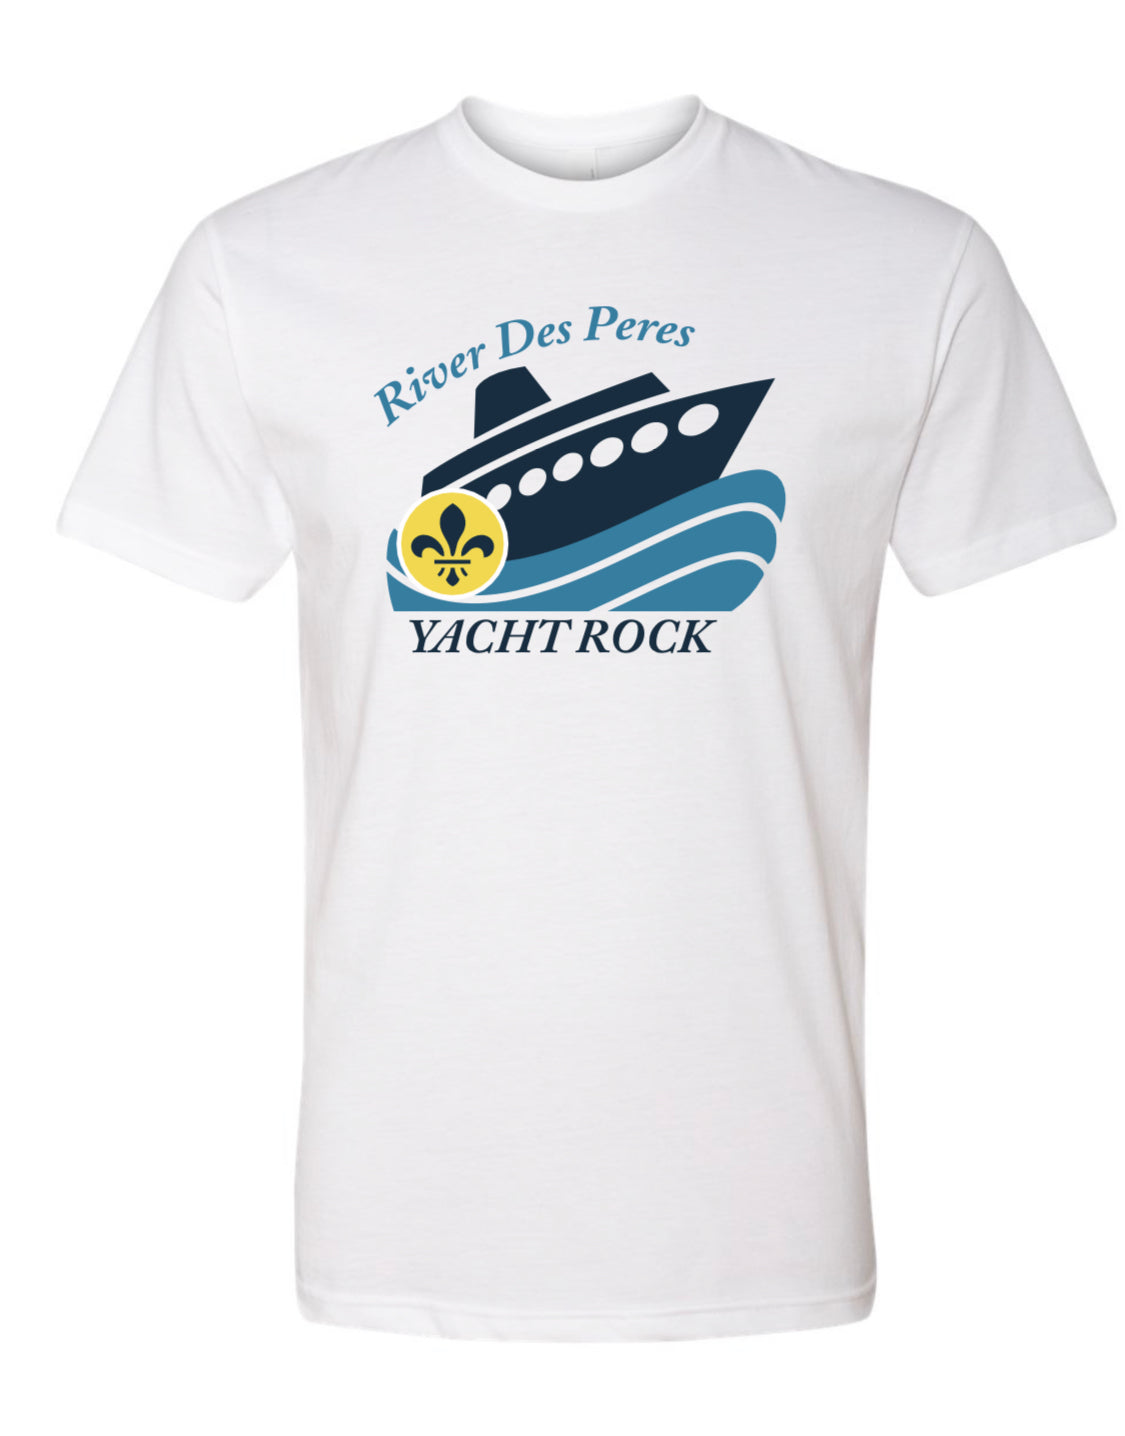 Sold Out: River Des Peres Yacht Rock T